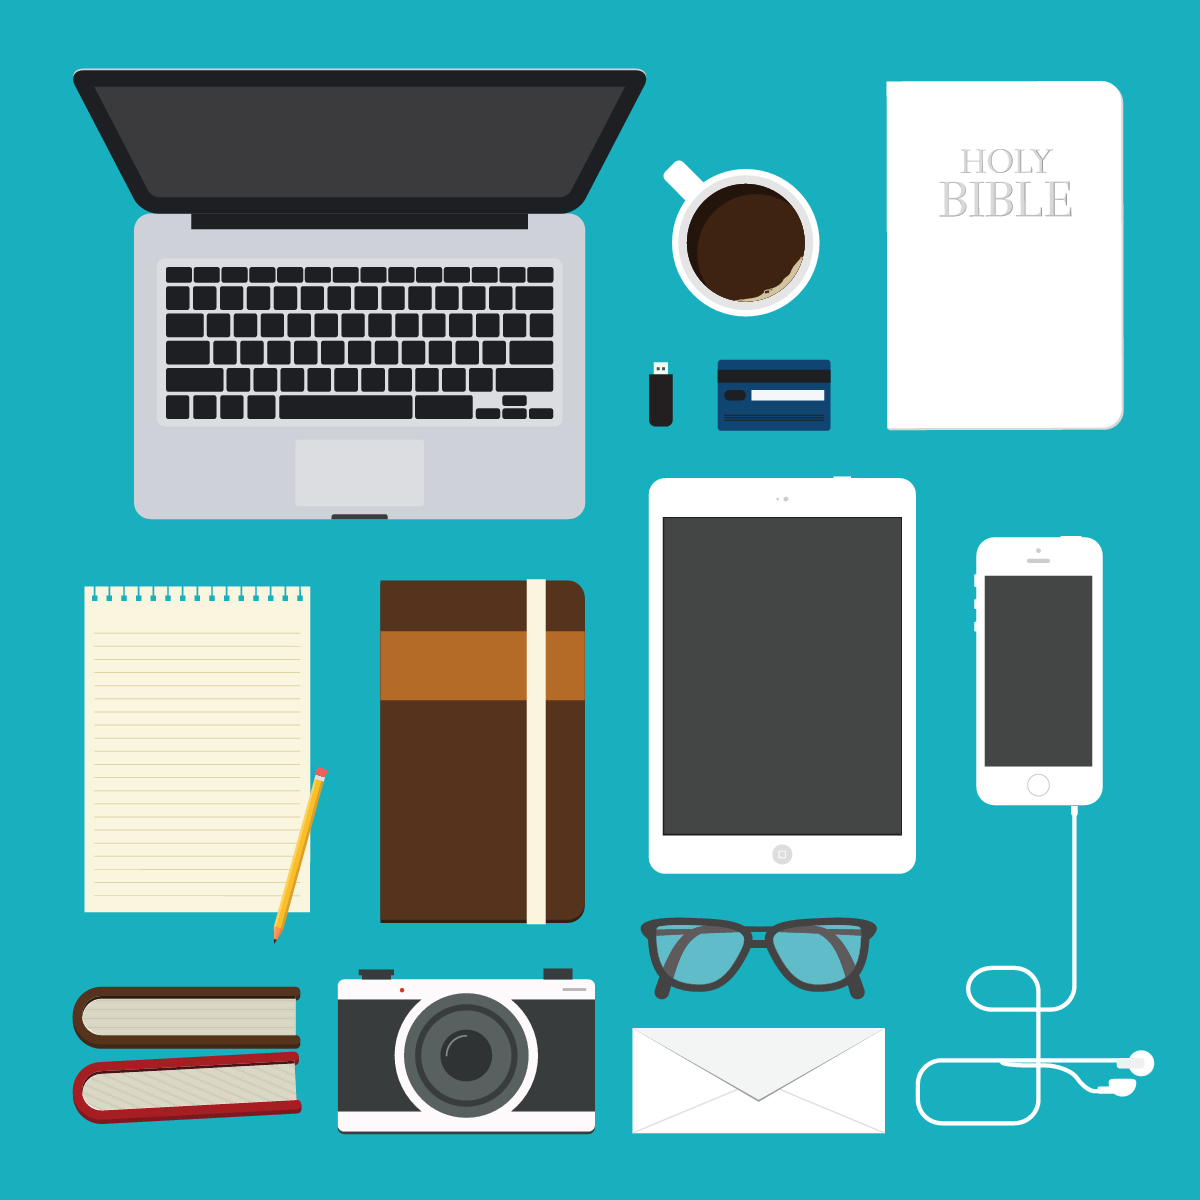 graphical depiction of electronic devices, paper, pencil, Bible, coffee mug